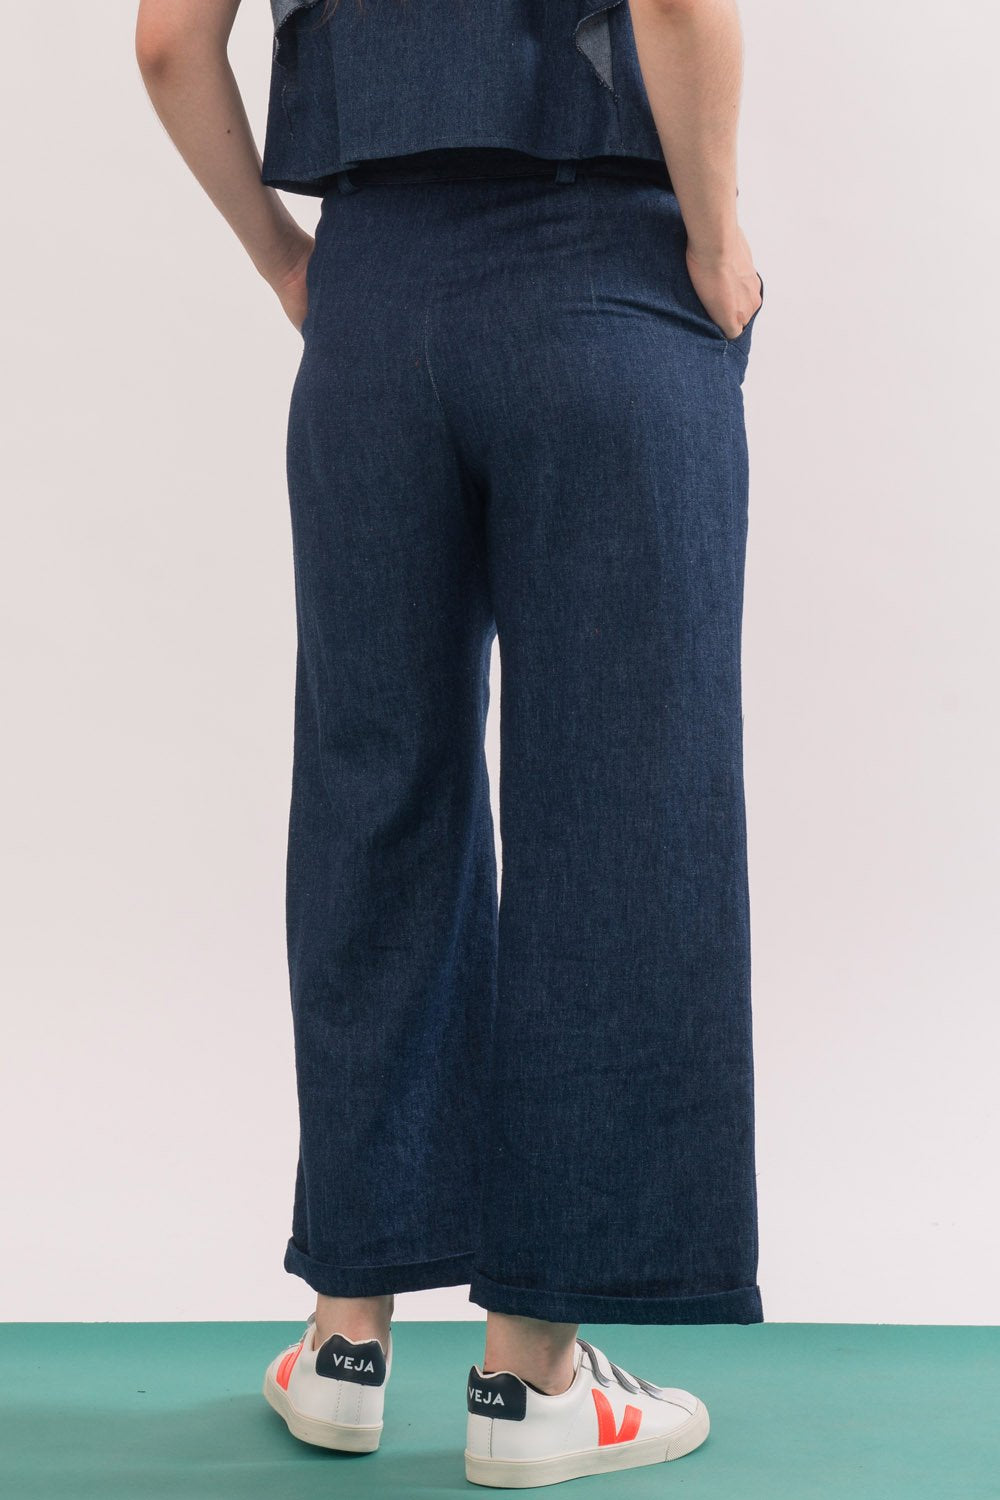 Agnes Trouser by Jennifer Glasgow, Denim, side view, long fly, flared leg, organic cotton twill, eco fabric, OEKO-TEX Standard 100, sizes XS to XL, made in Montreal Canada